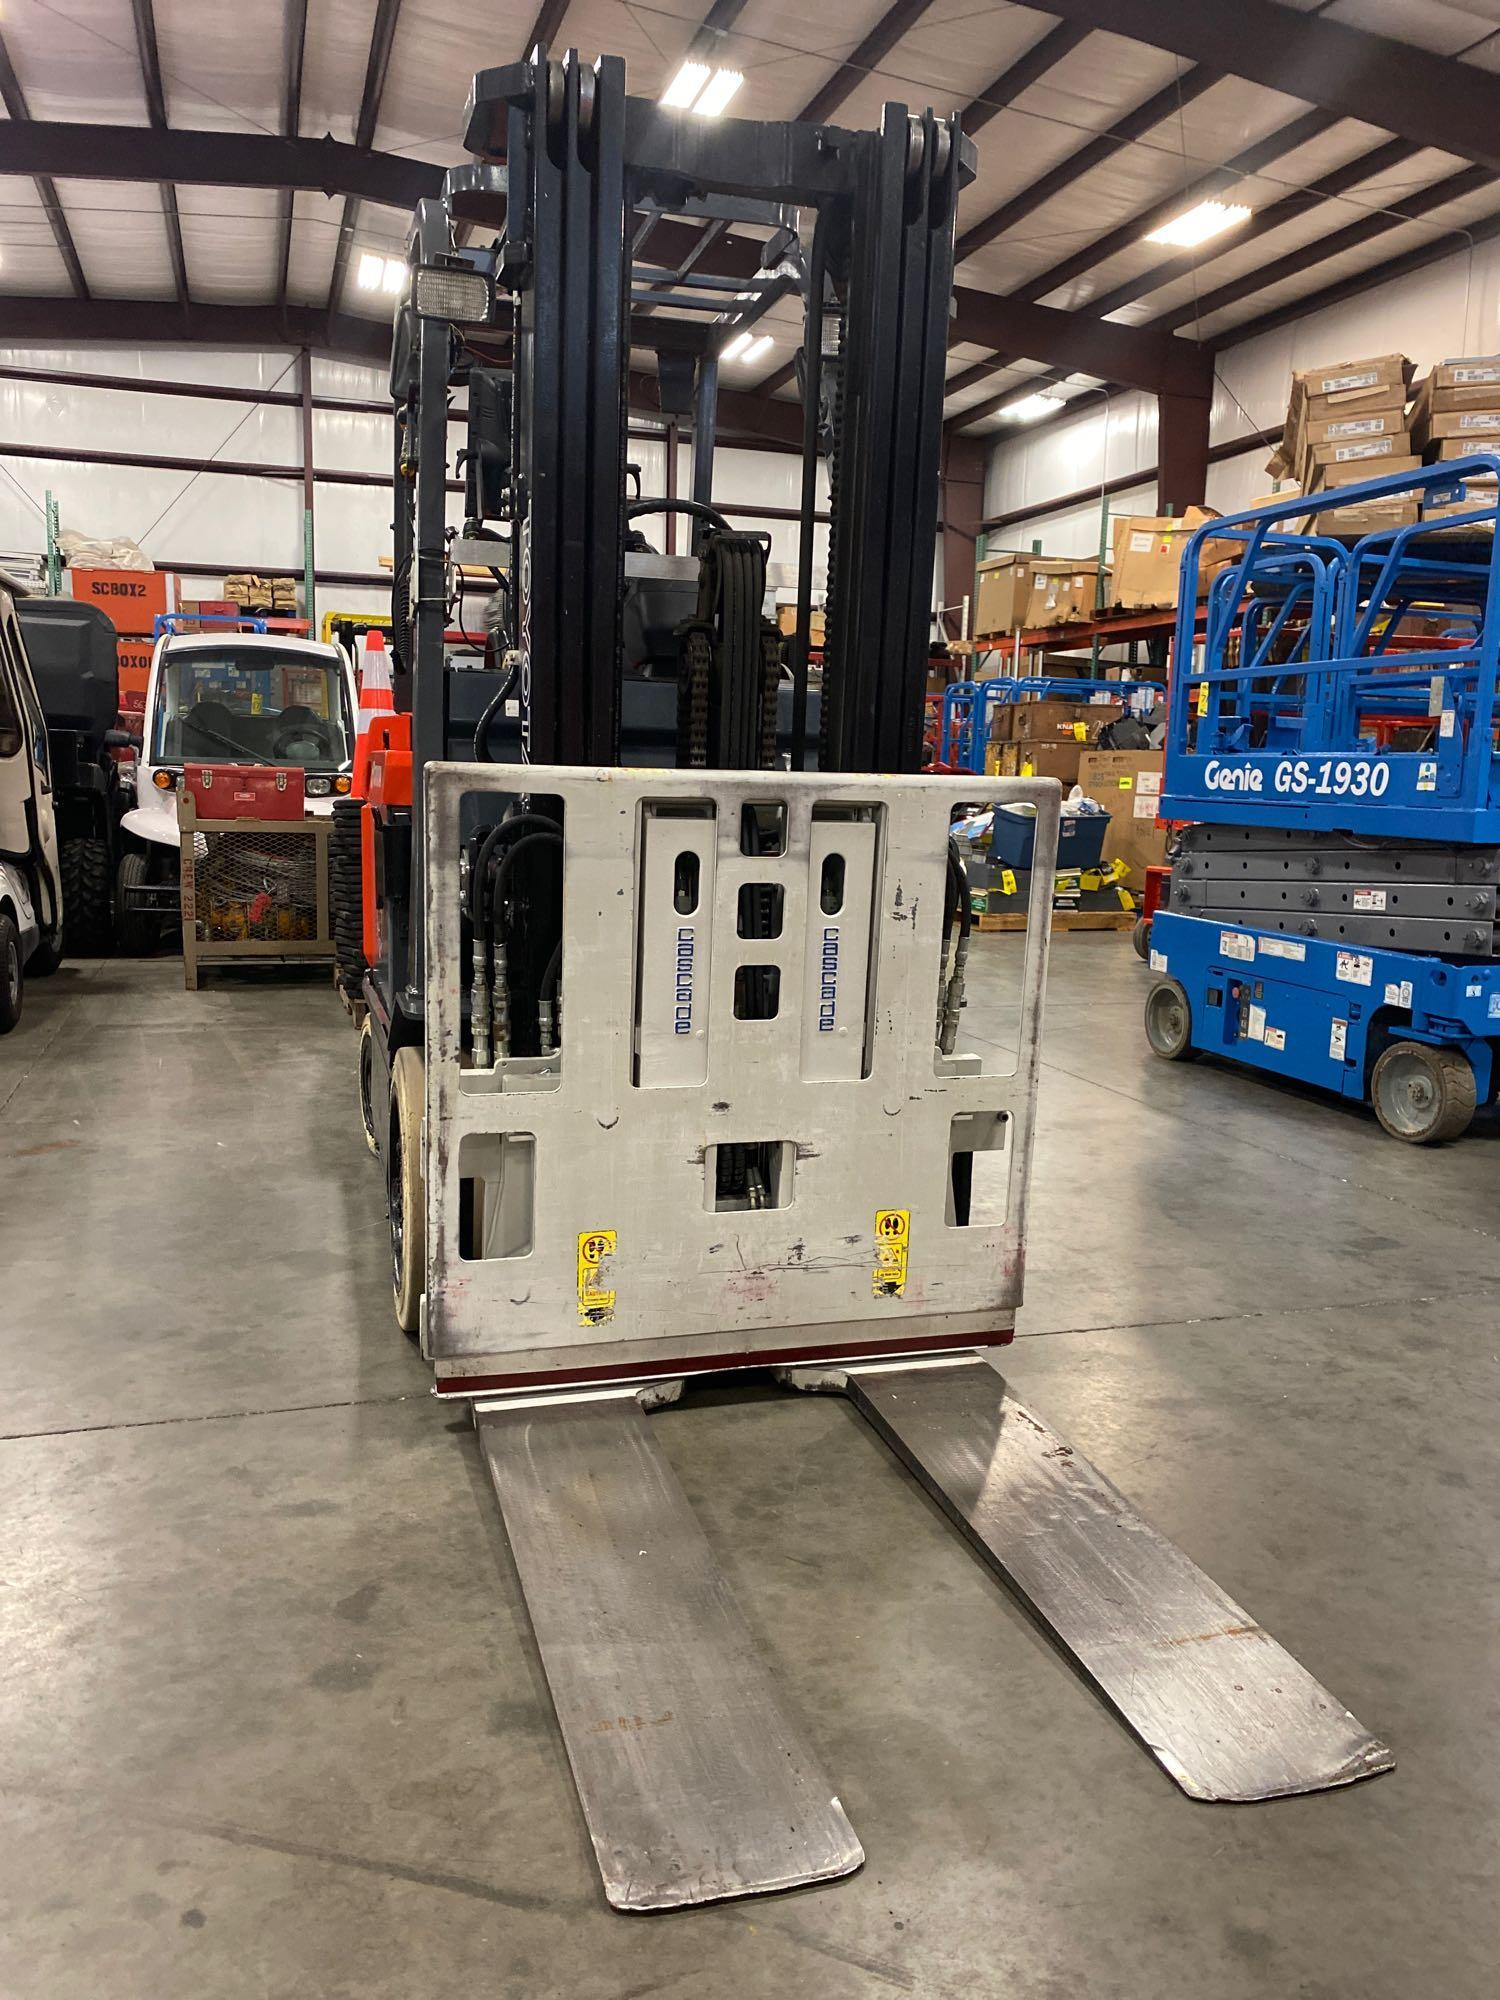 """TOYOTA ELECTRIC FORKLIFT MODEL 7FBCU25, 189"""" HEIGHT CAPACITY, TILT, SIDESHIFT, 36V, RUNS AND OPERATE - Image 7 of 11"""